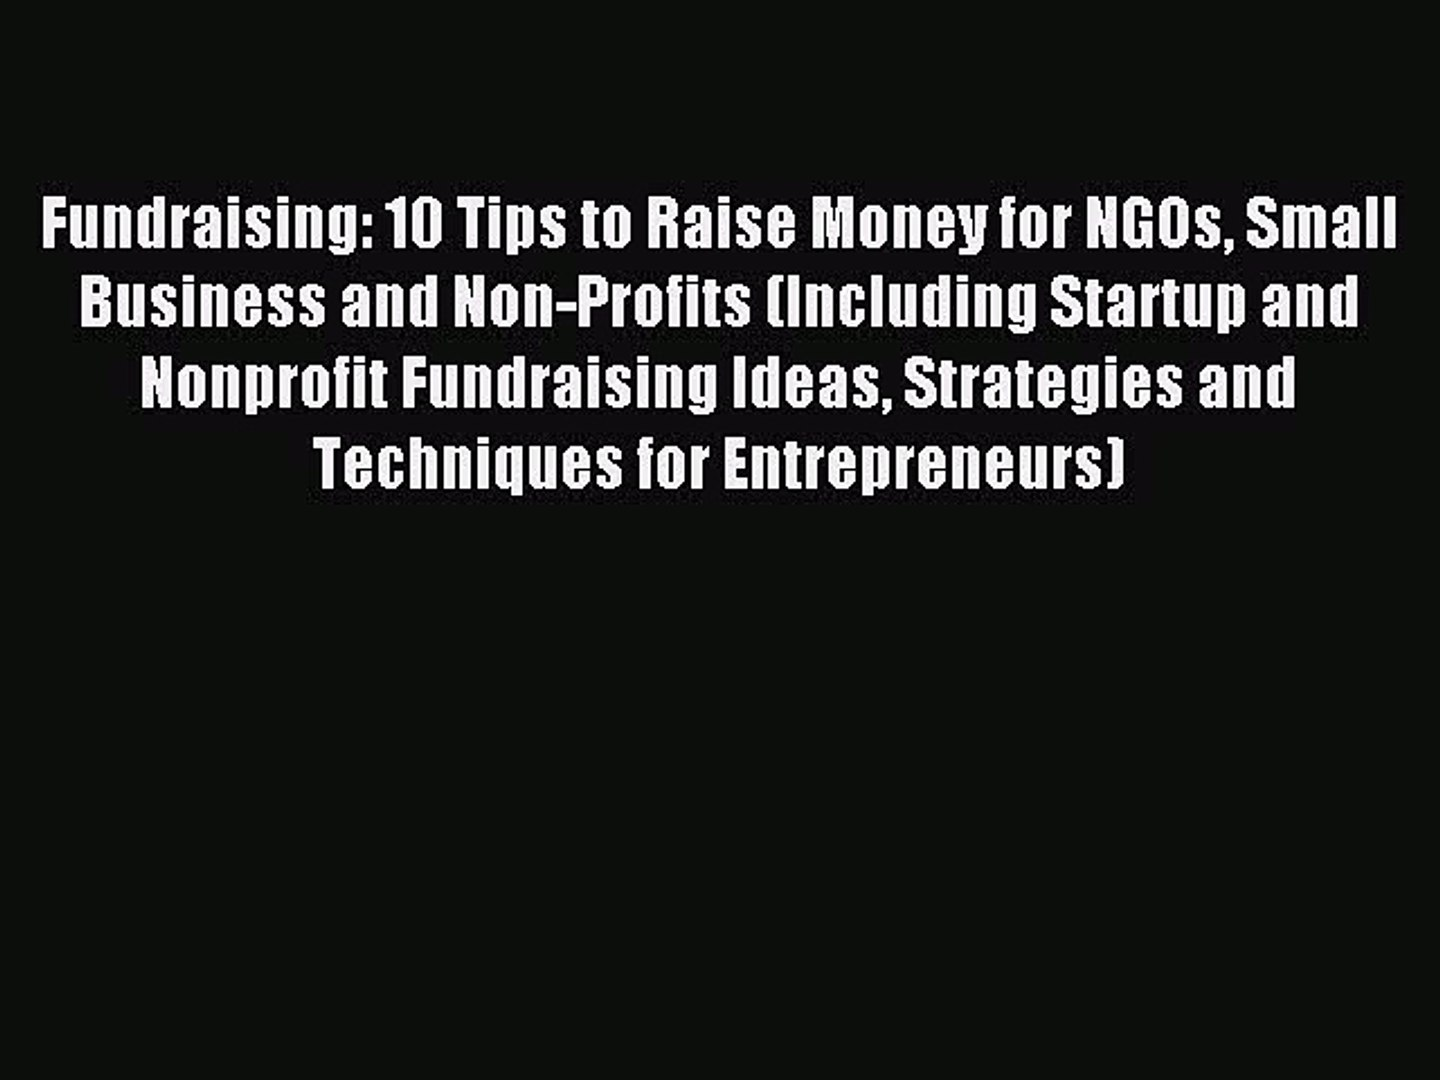 [PDF] Fundraising: 10 Tips to Raise Money for NGOs Small Business and Non-Profits (Including